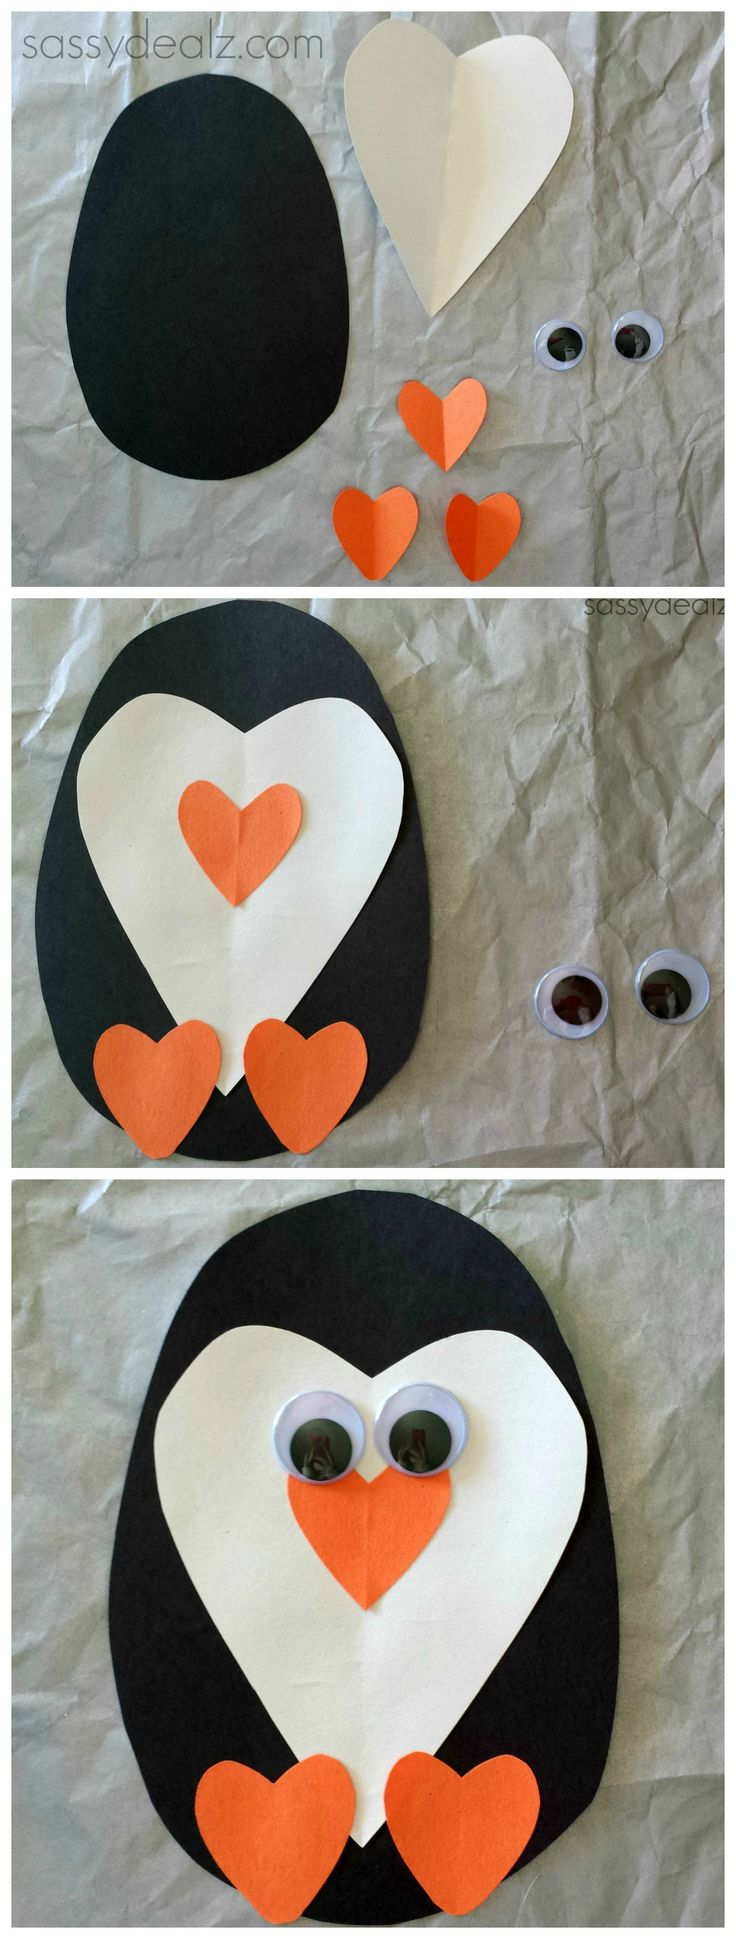 Paper Heart Penguin Craft For Kids #Valentines craft #DIY heart animal art project #Cute penguin | http://www.sassydealz.com/2014/01/paper-heart-penguin-craft-for-kids.html